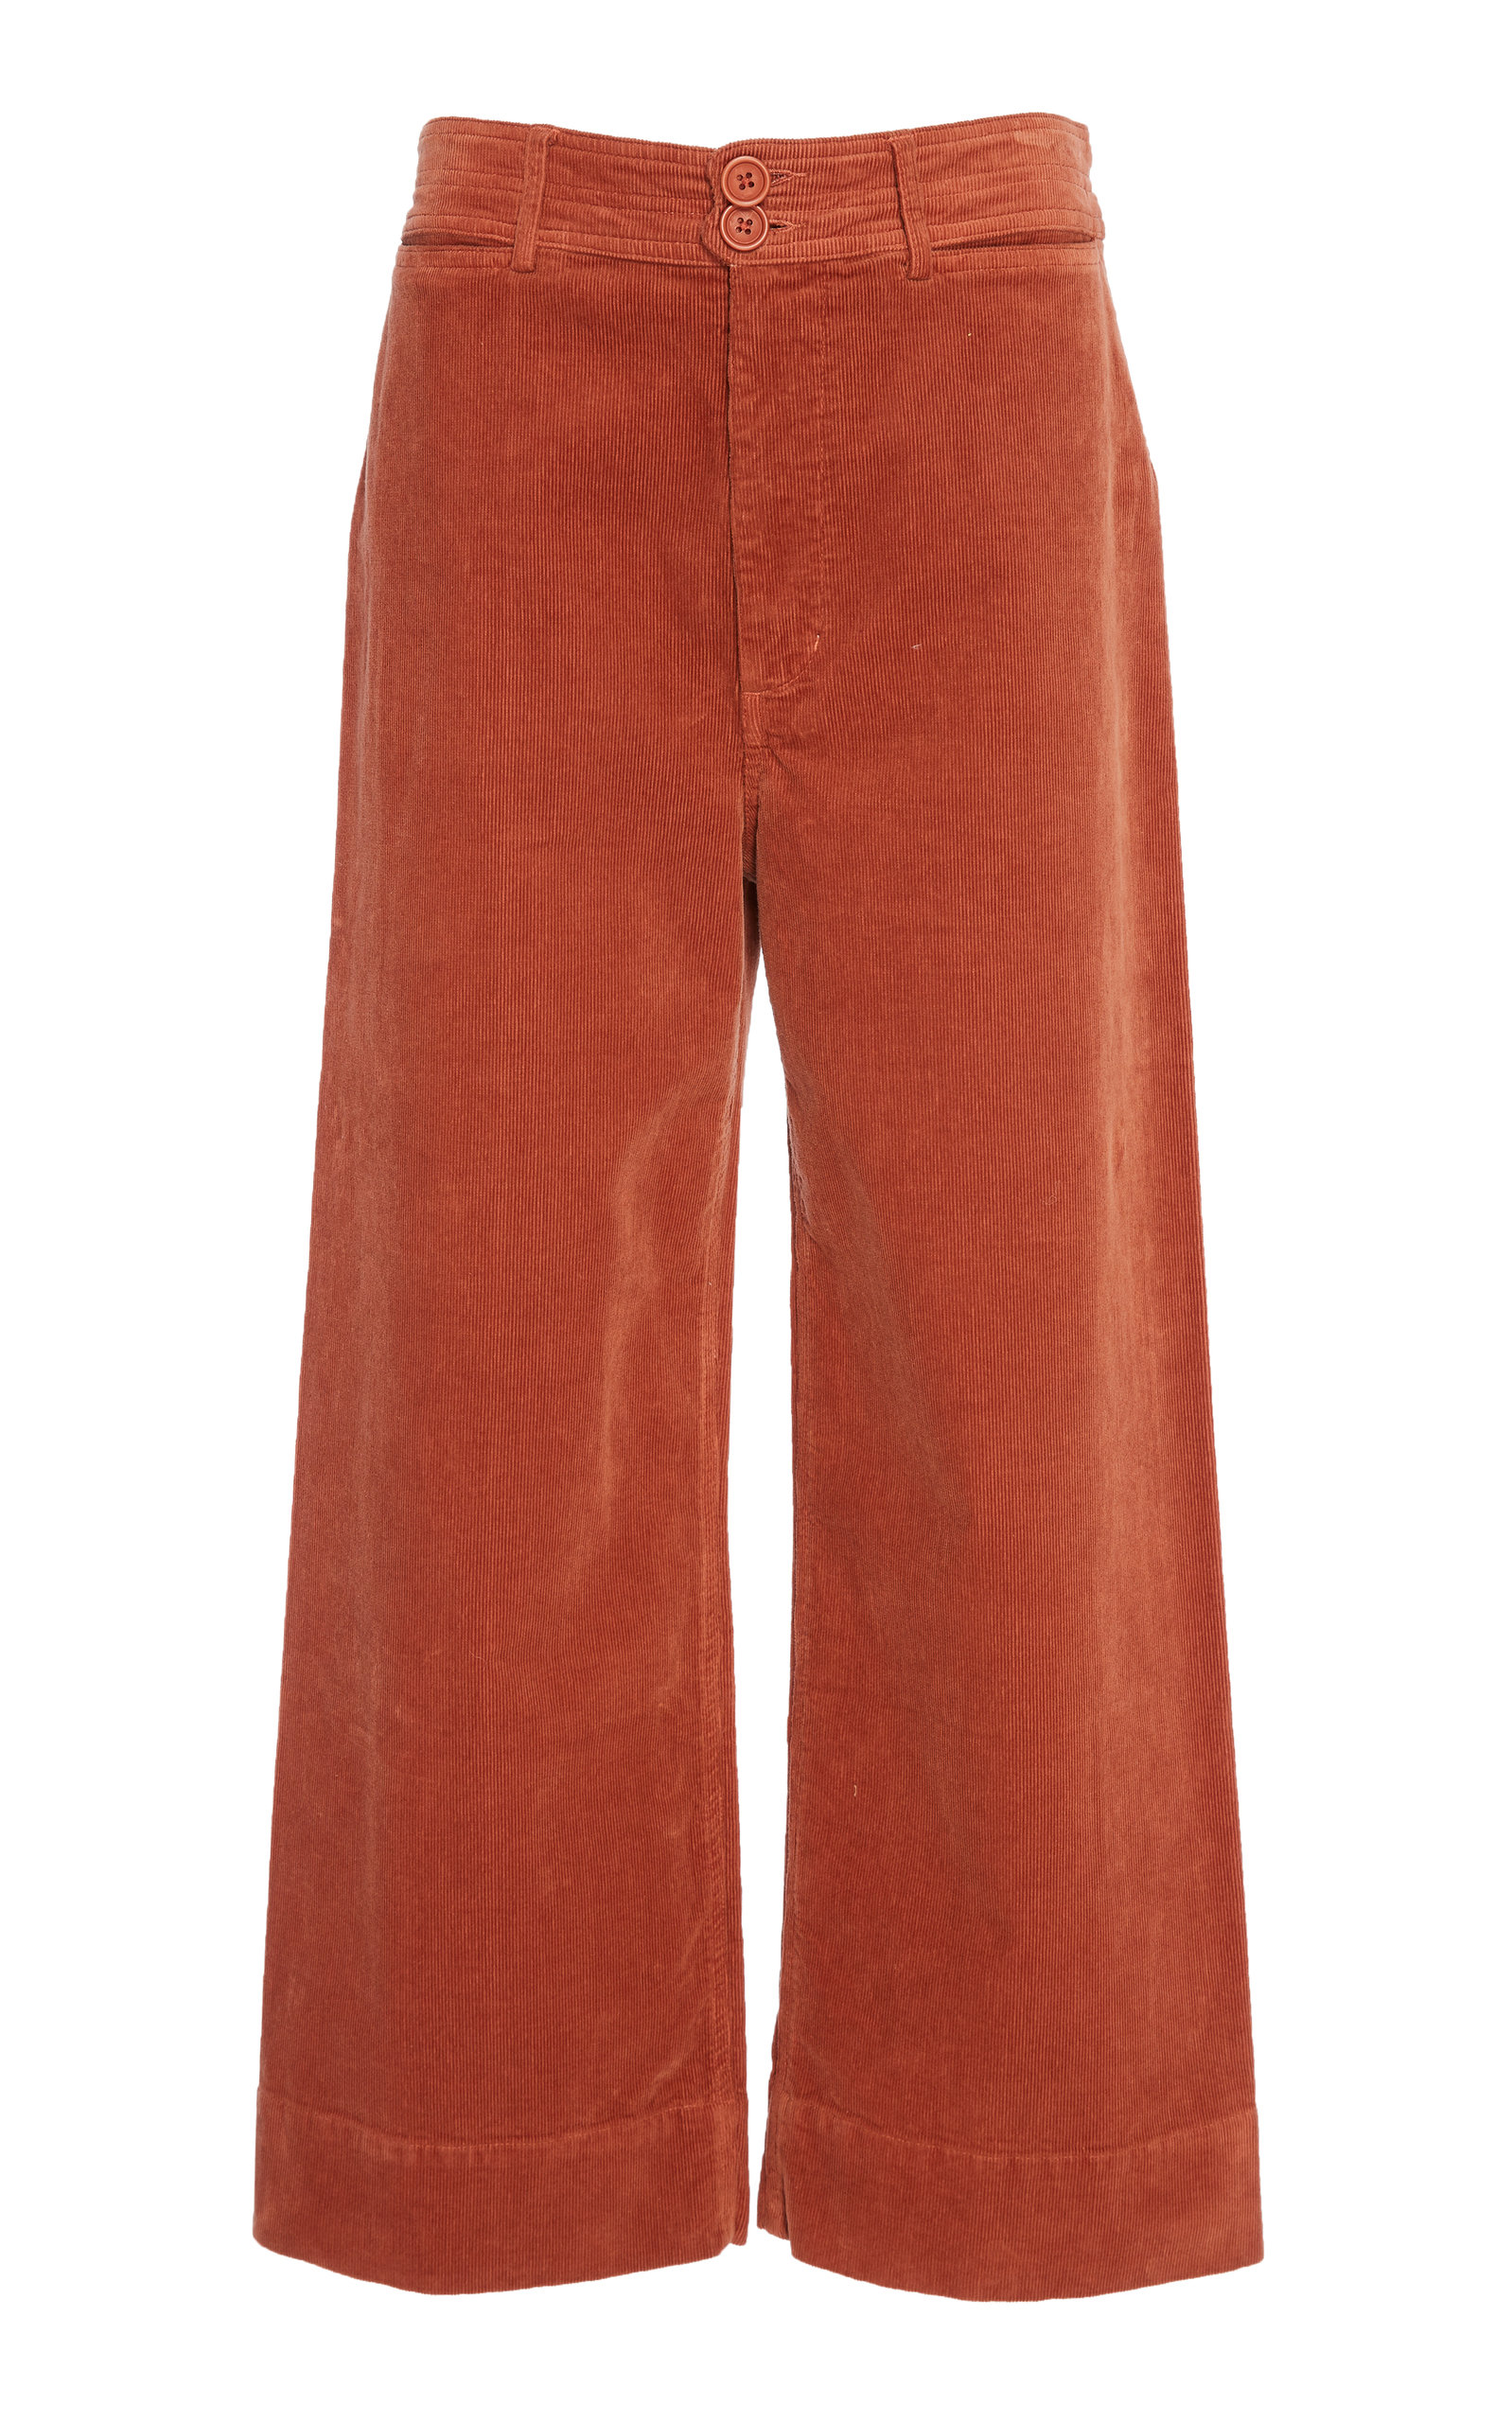 Corduroy Merida Pant in Brown